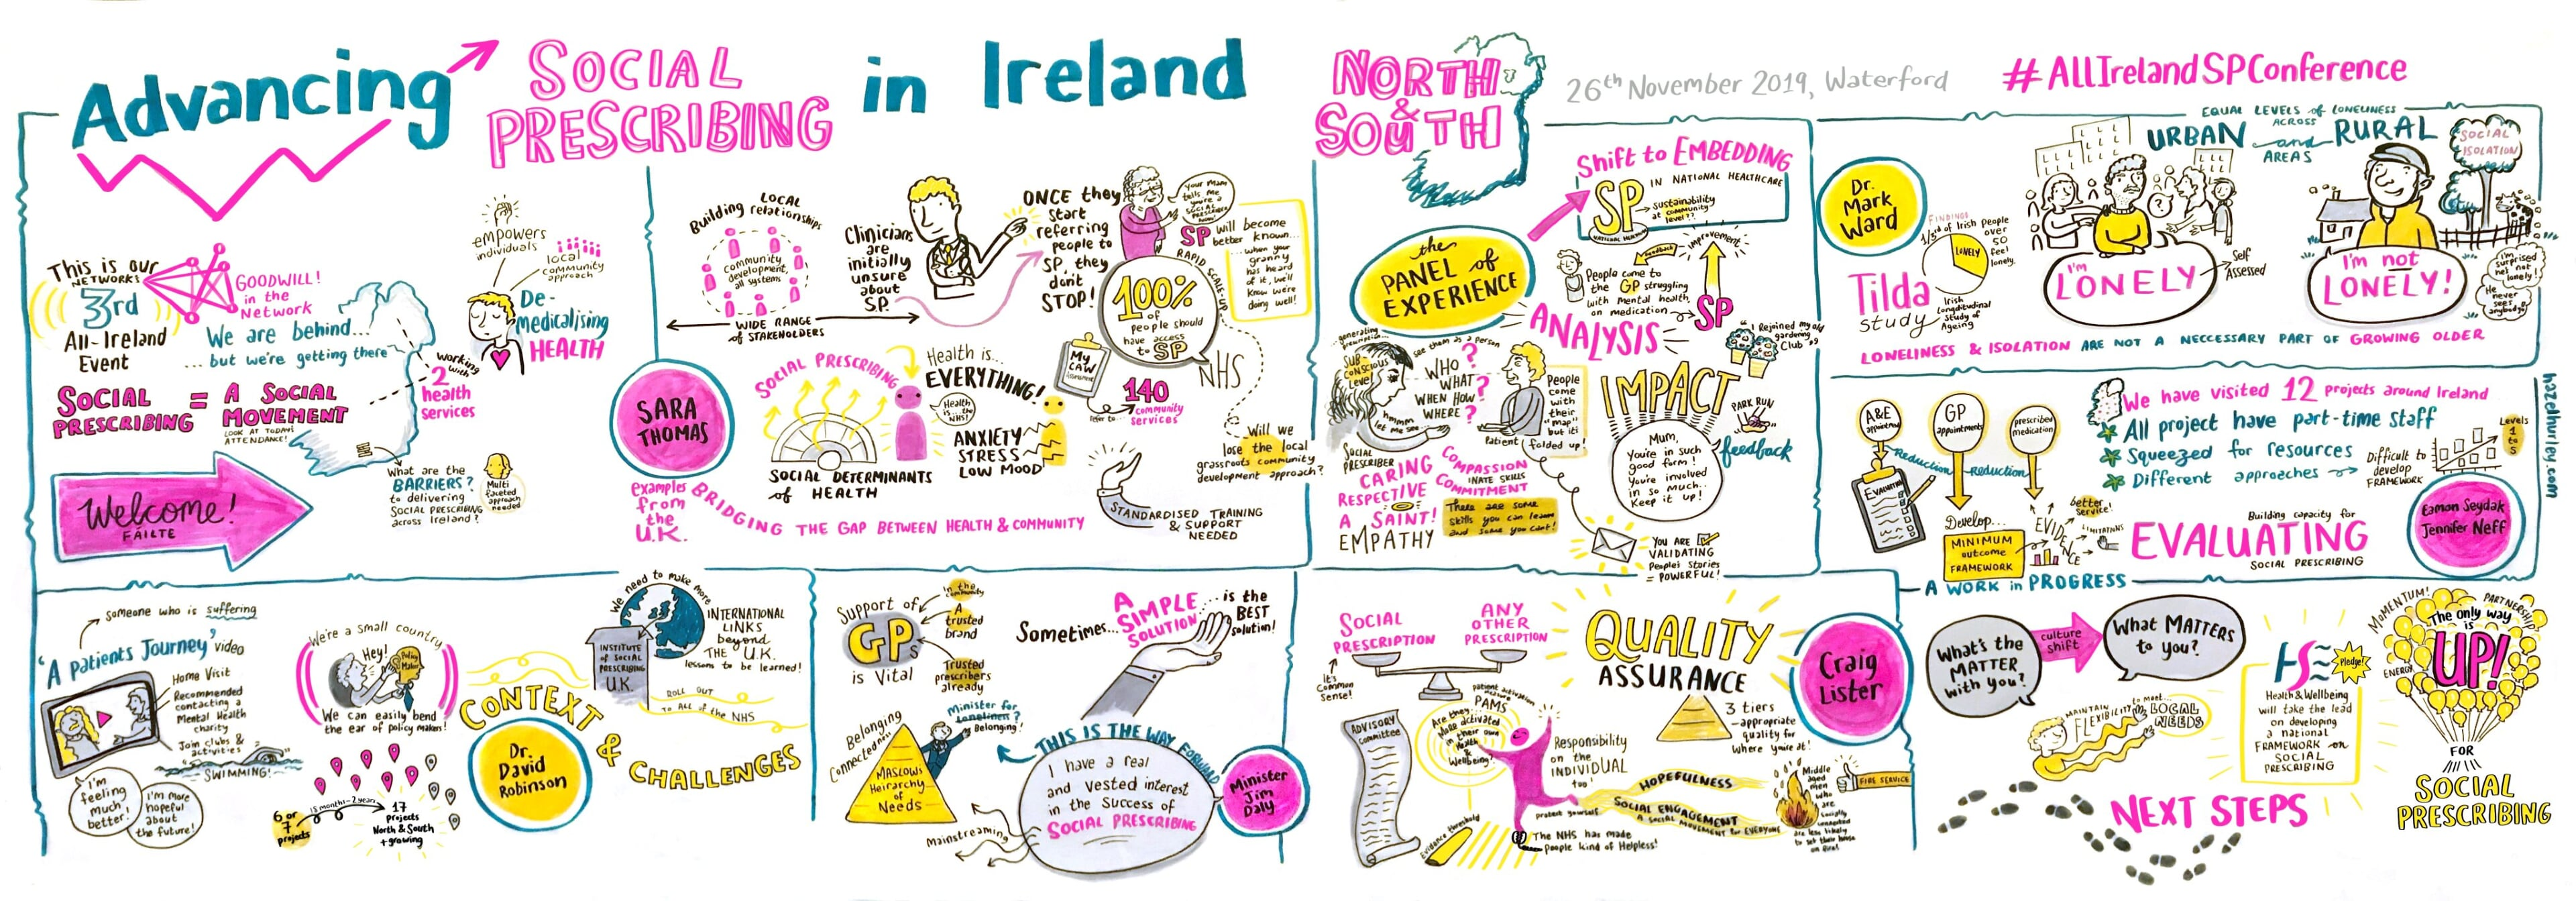 Social Prescribing graphic recording